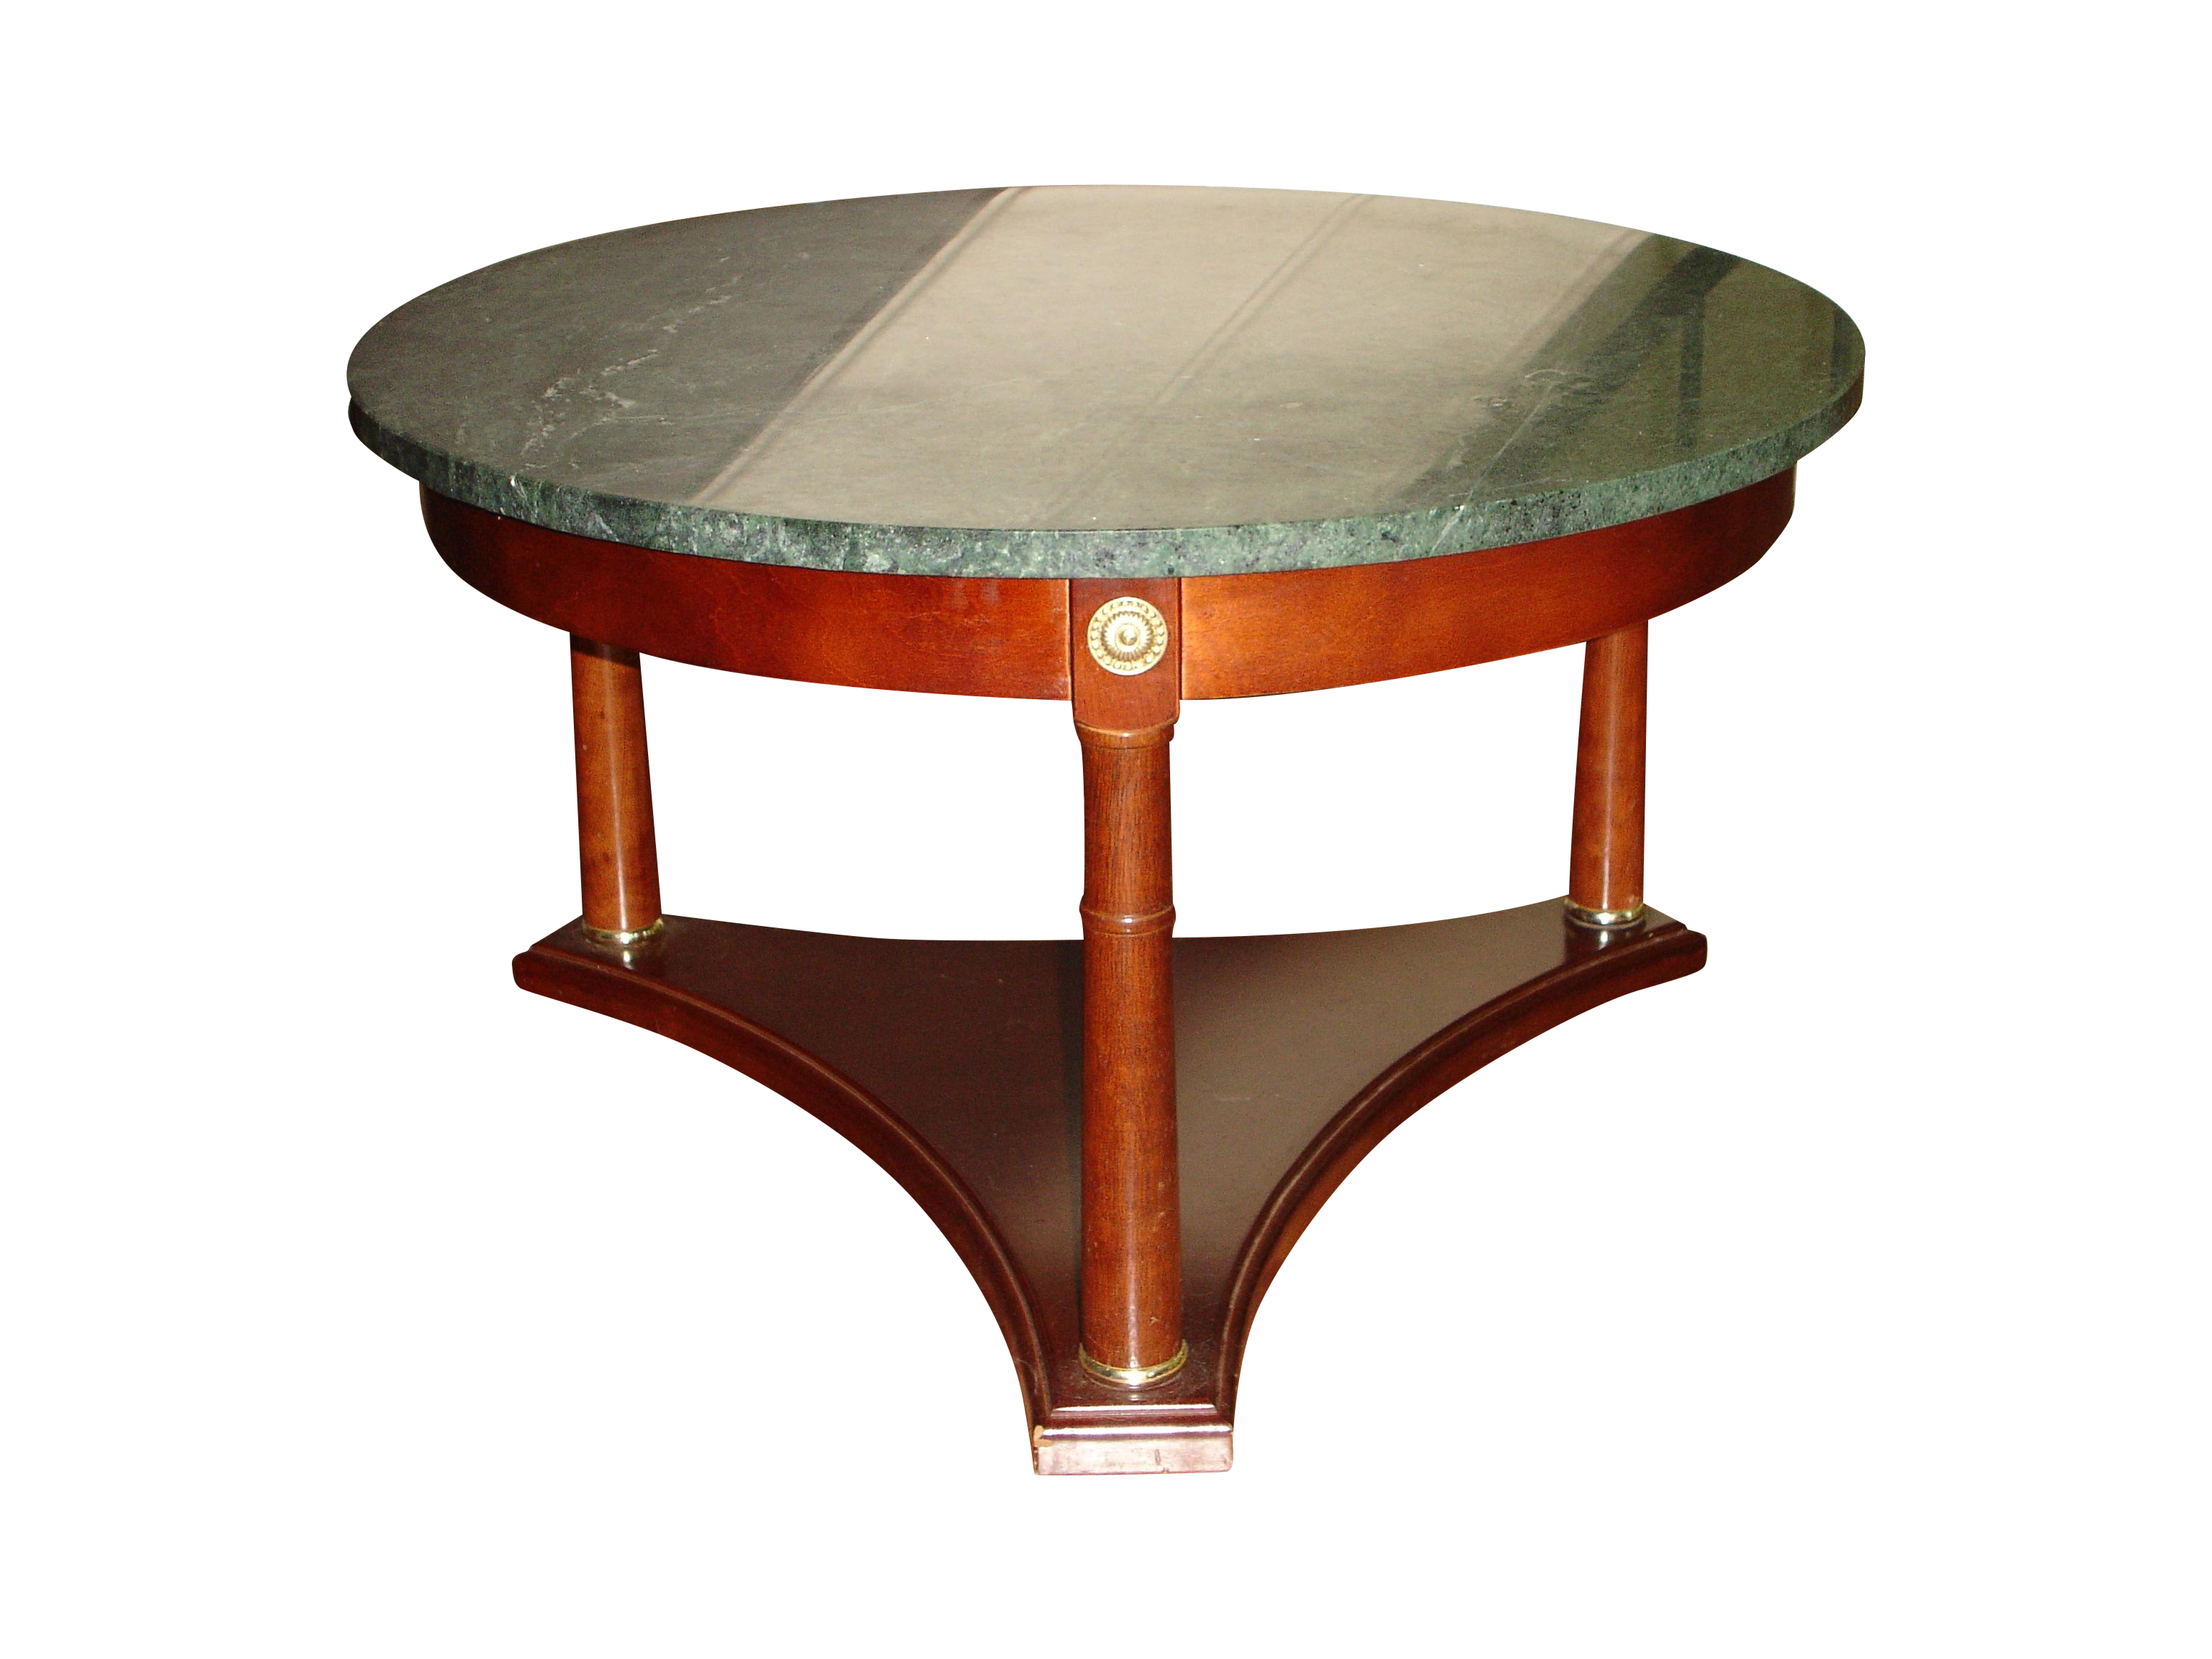 Vintage Green Marble Top amp Mahogany Coffee Table Chairish : vintage green marble top and mahogany coffee table 0916aspectfitampwidth640ampheight640 from www.chairish.com size 640 x 640 jpeg 23kB